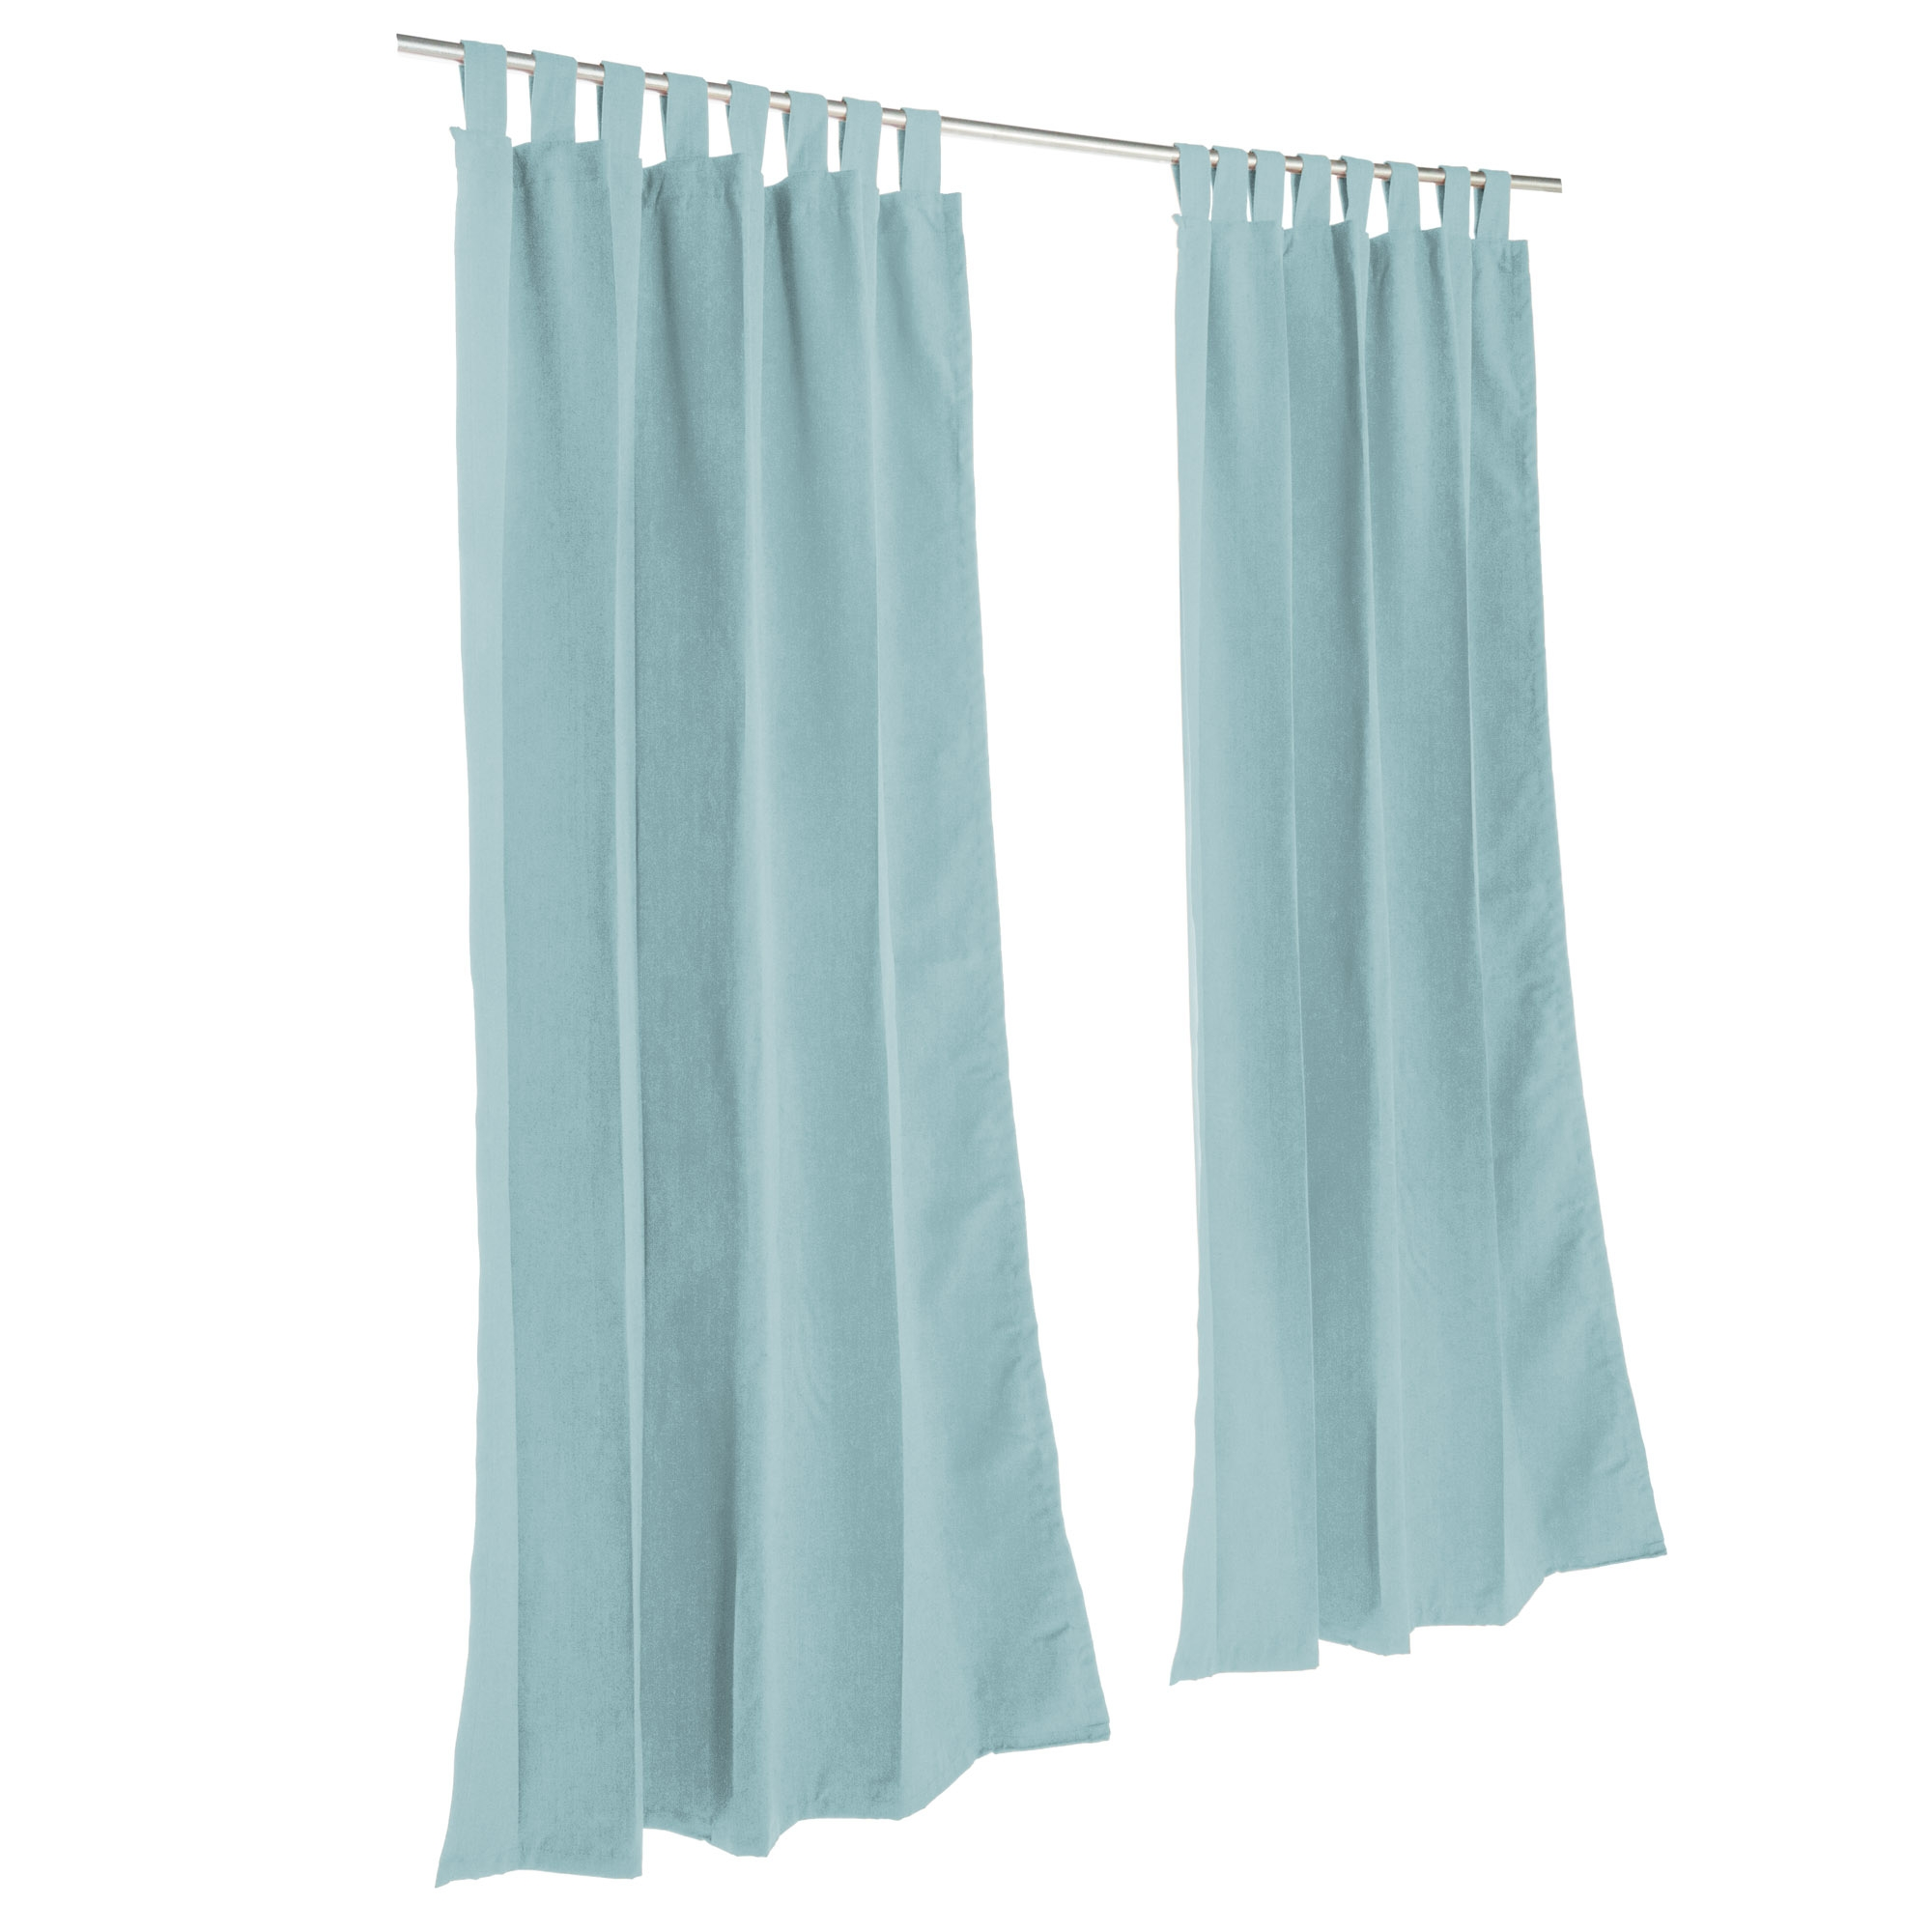 Sunbrella Curtains | Weighted Outdoor Curtains | Sunbrella Outdoor Curtains